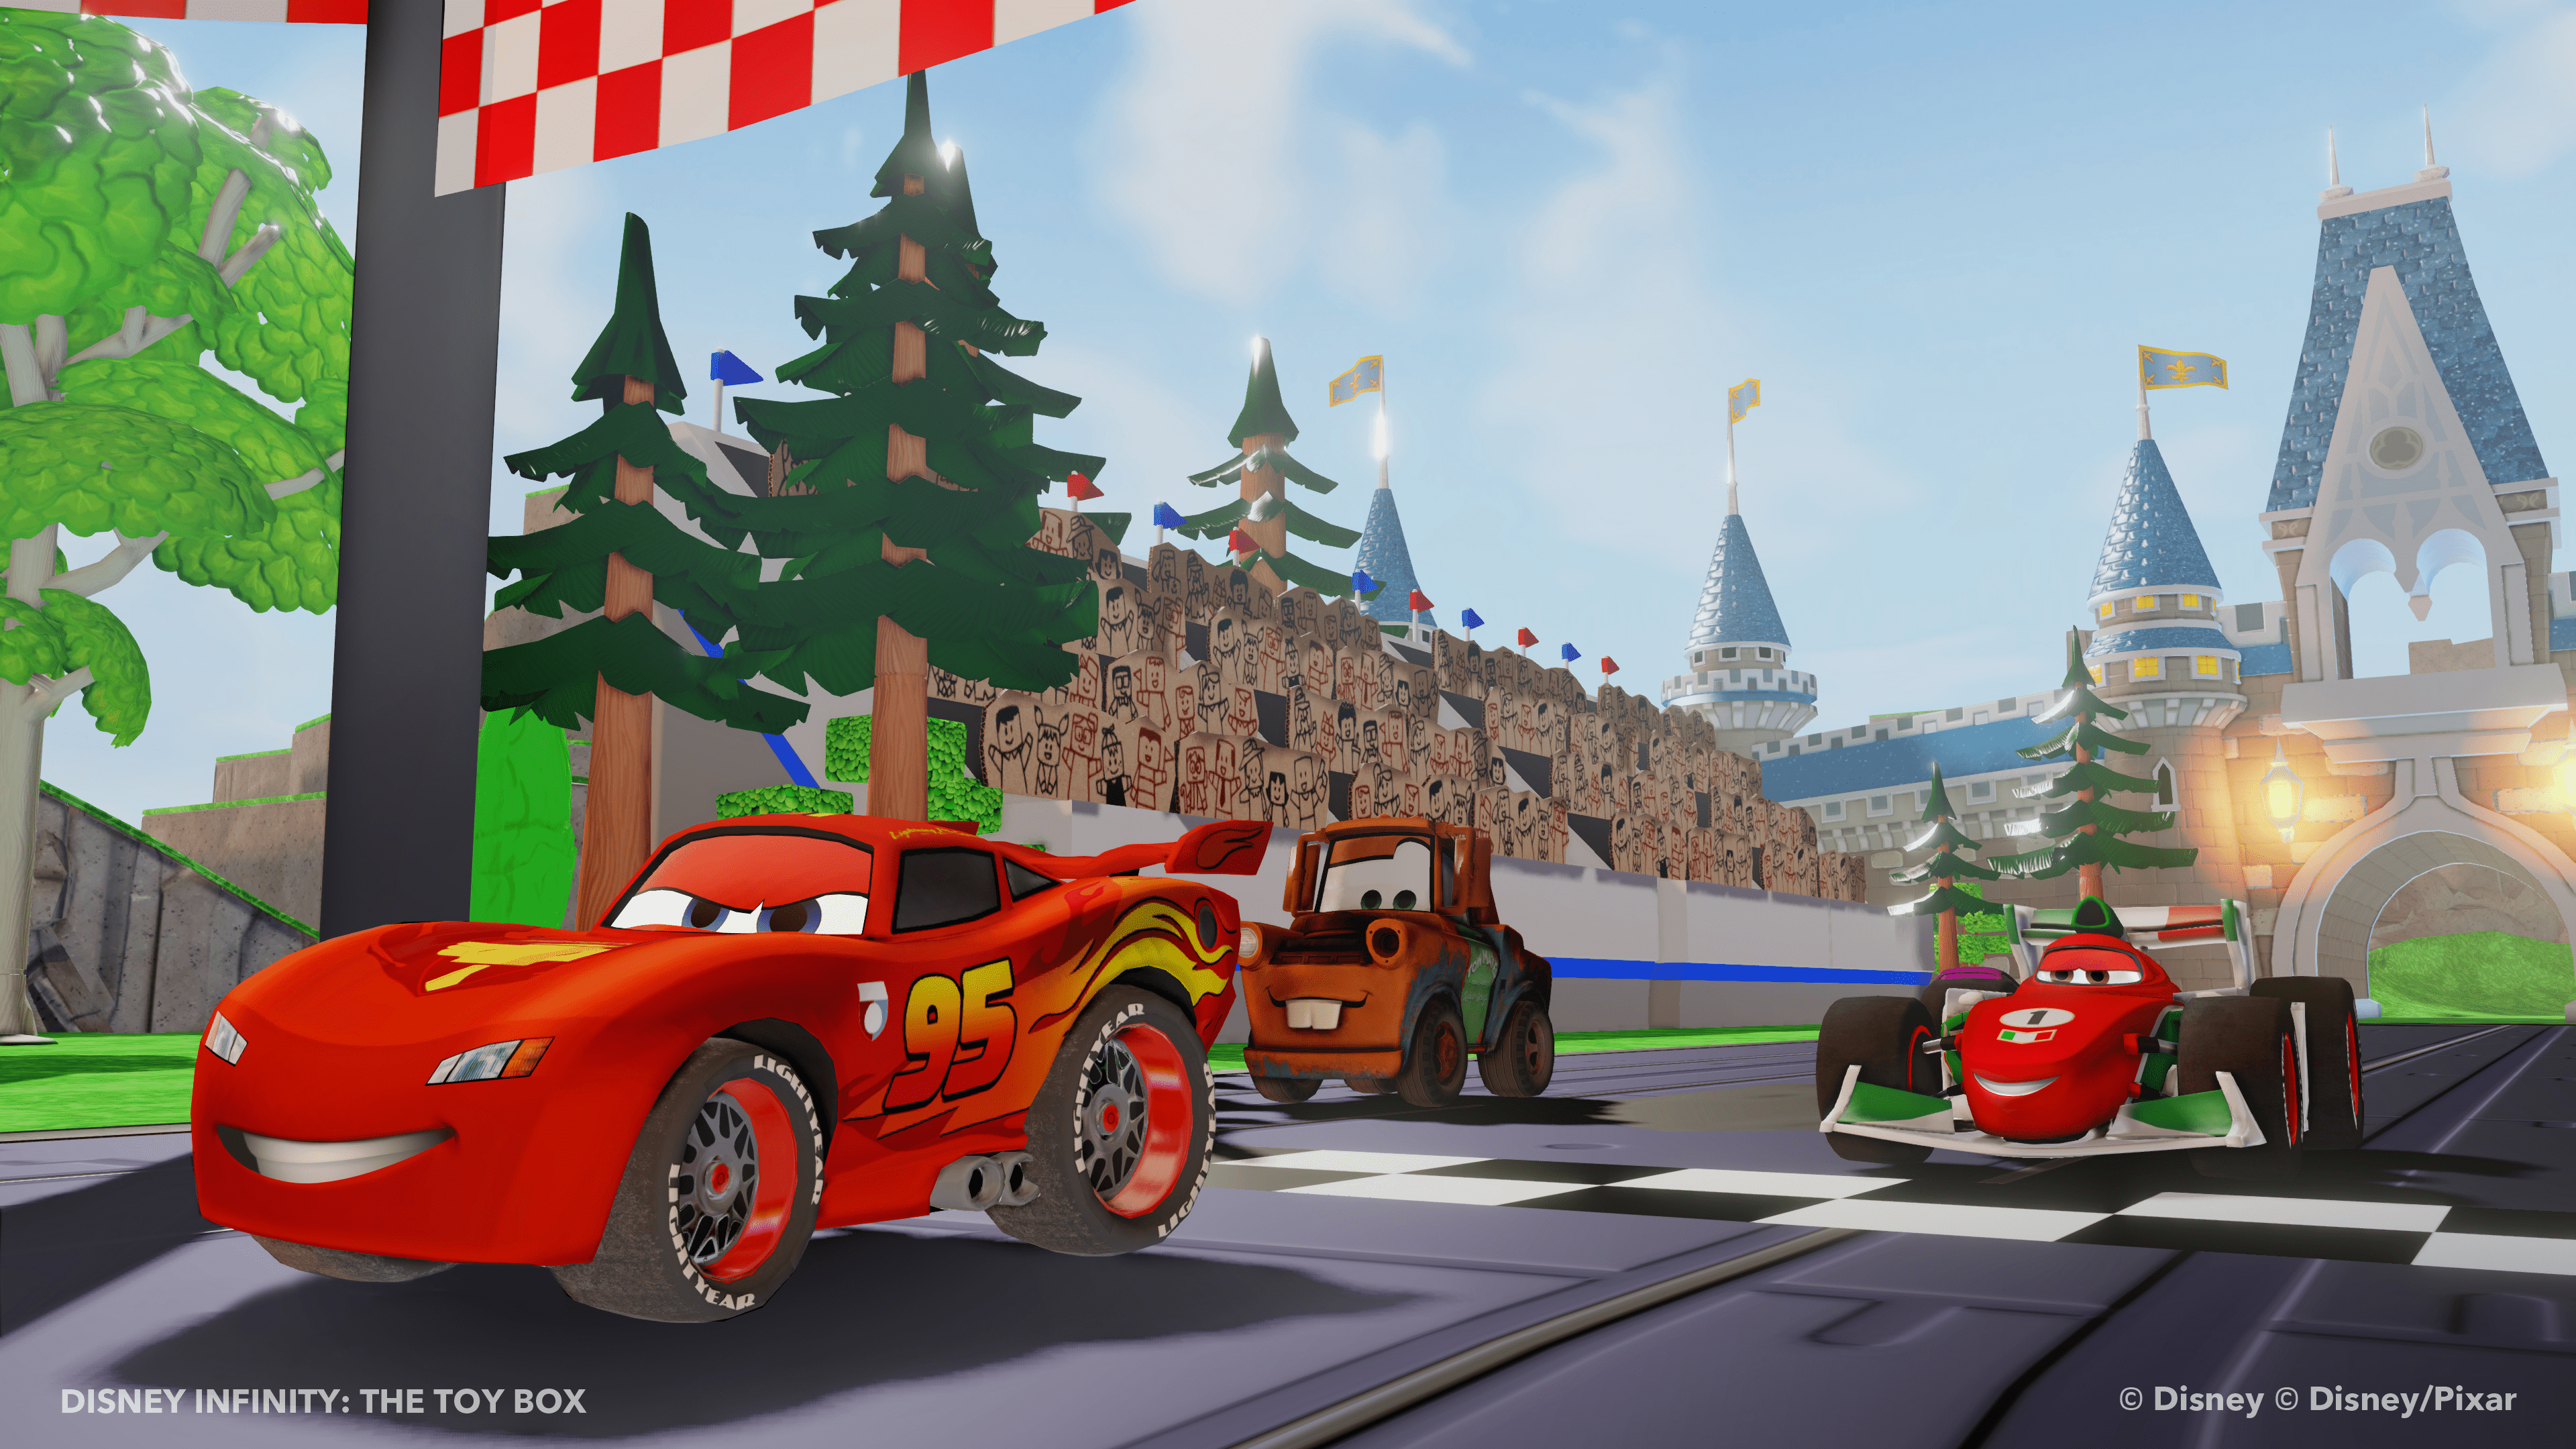 Toy Cars Wallpapers Disney Infinity Cars Play Set Sparklyeverafter Com